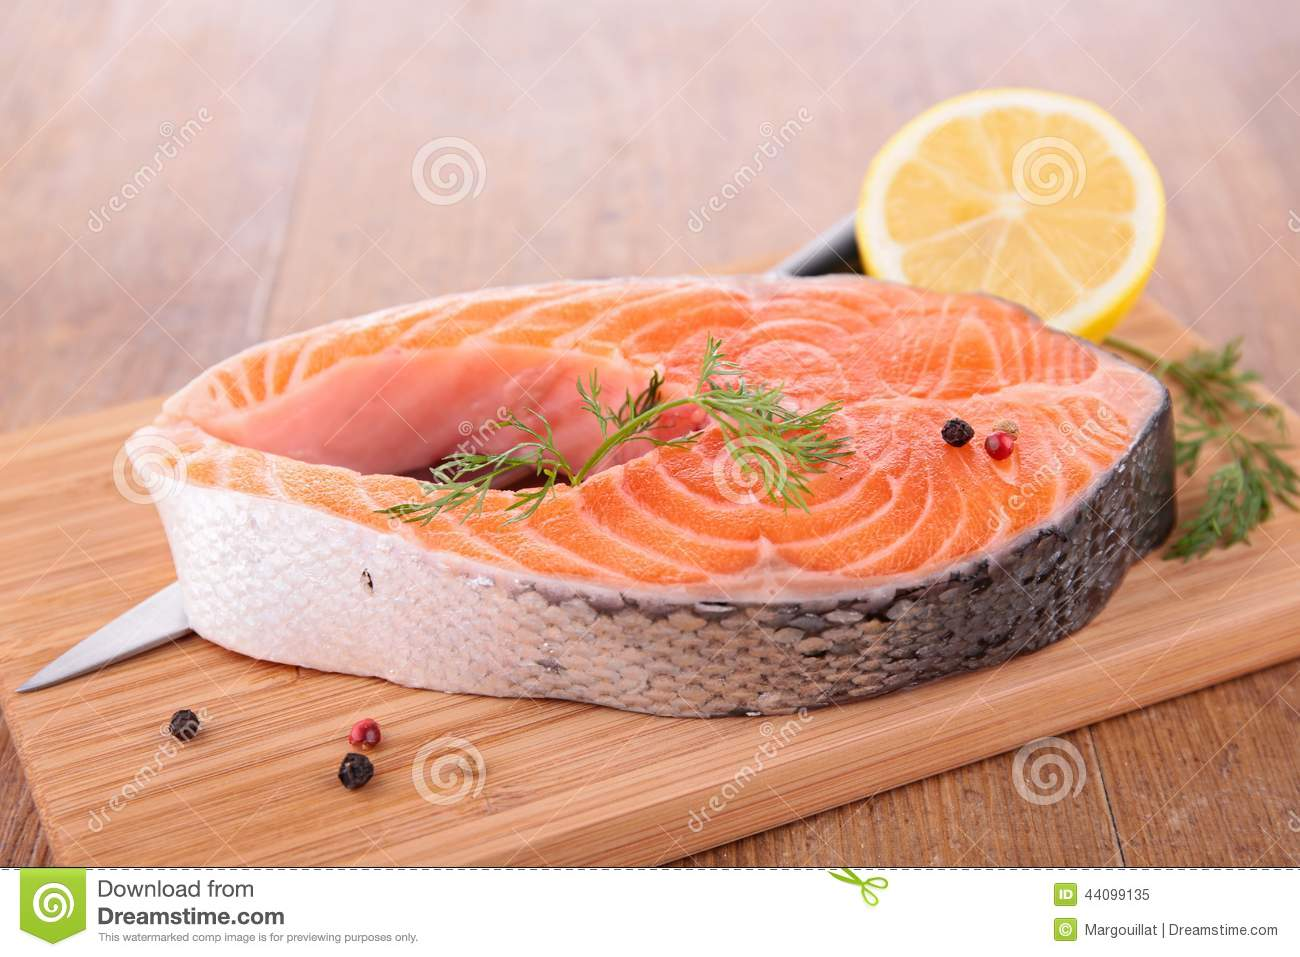 how to cook raw salmon